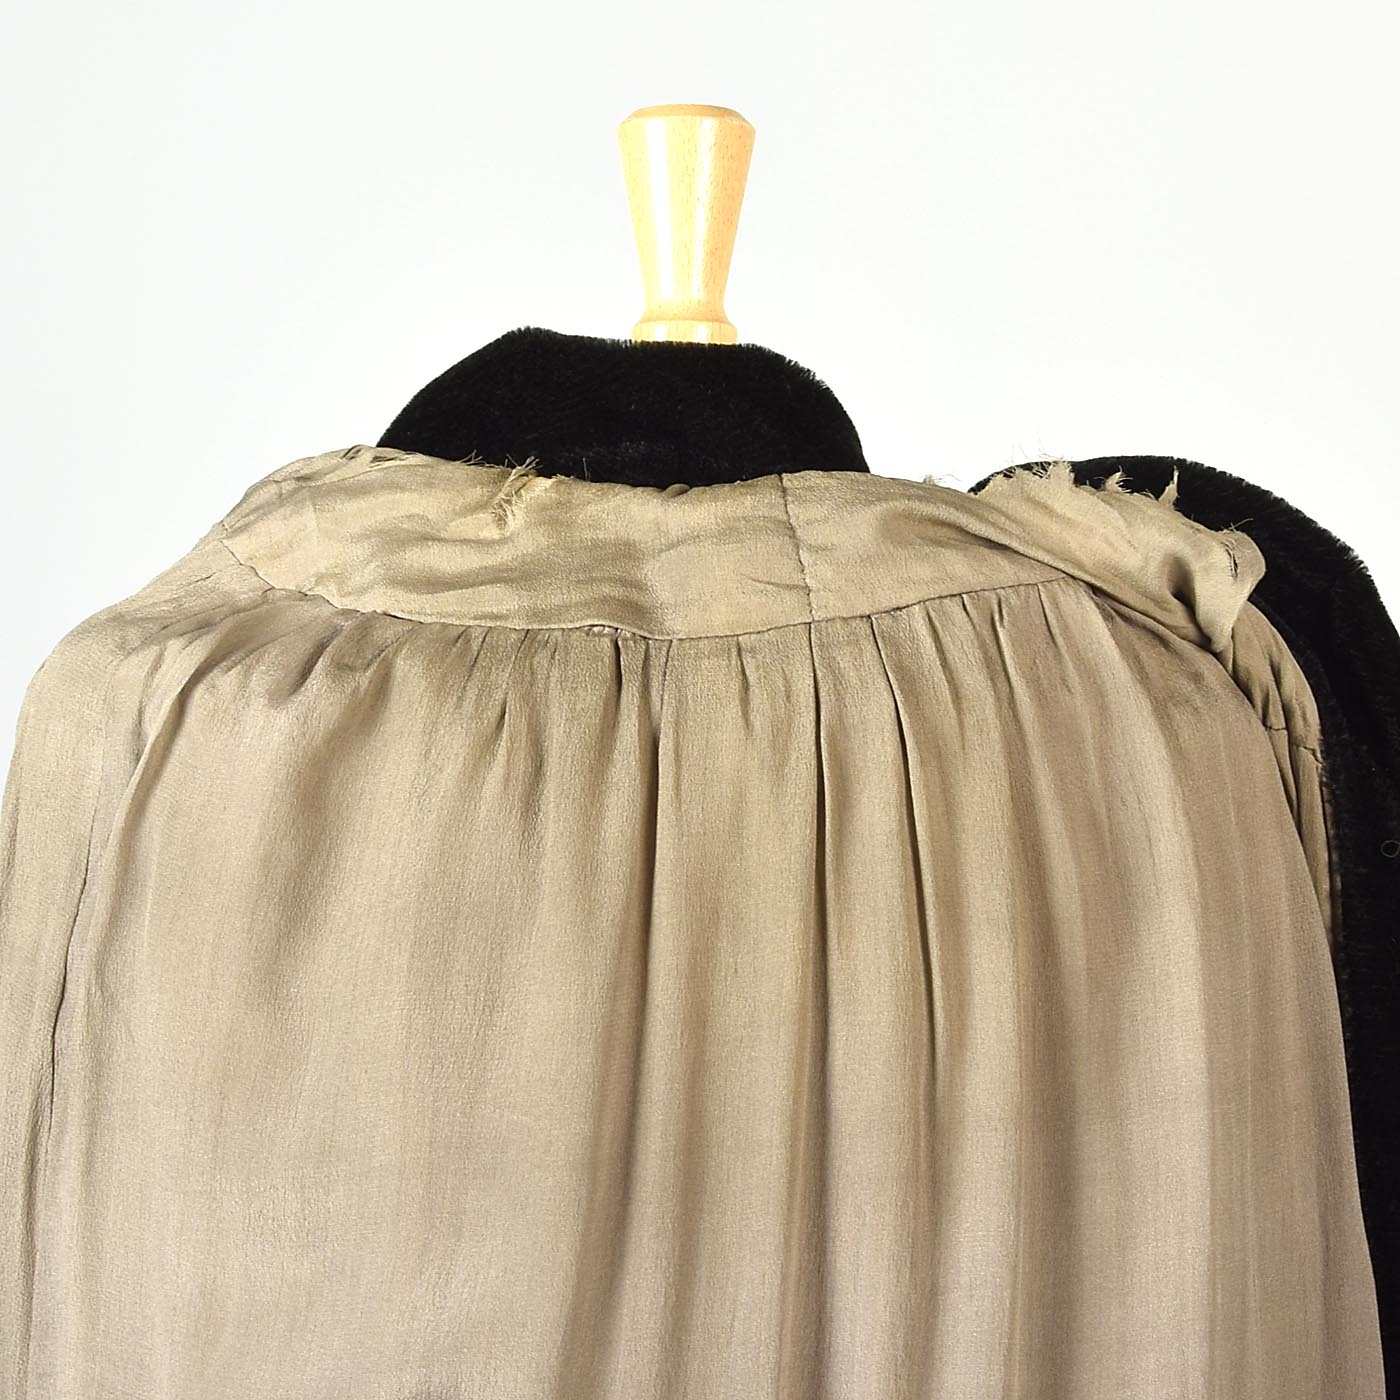 1920s Mohair Velvet Cape with Decorative Buckle